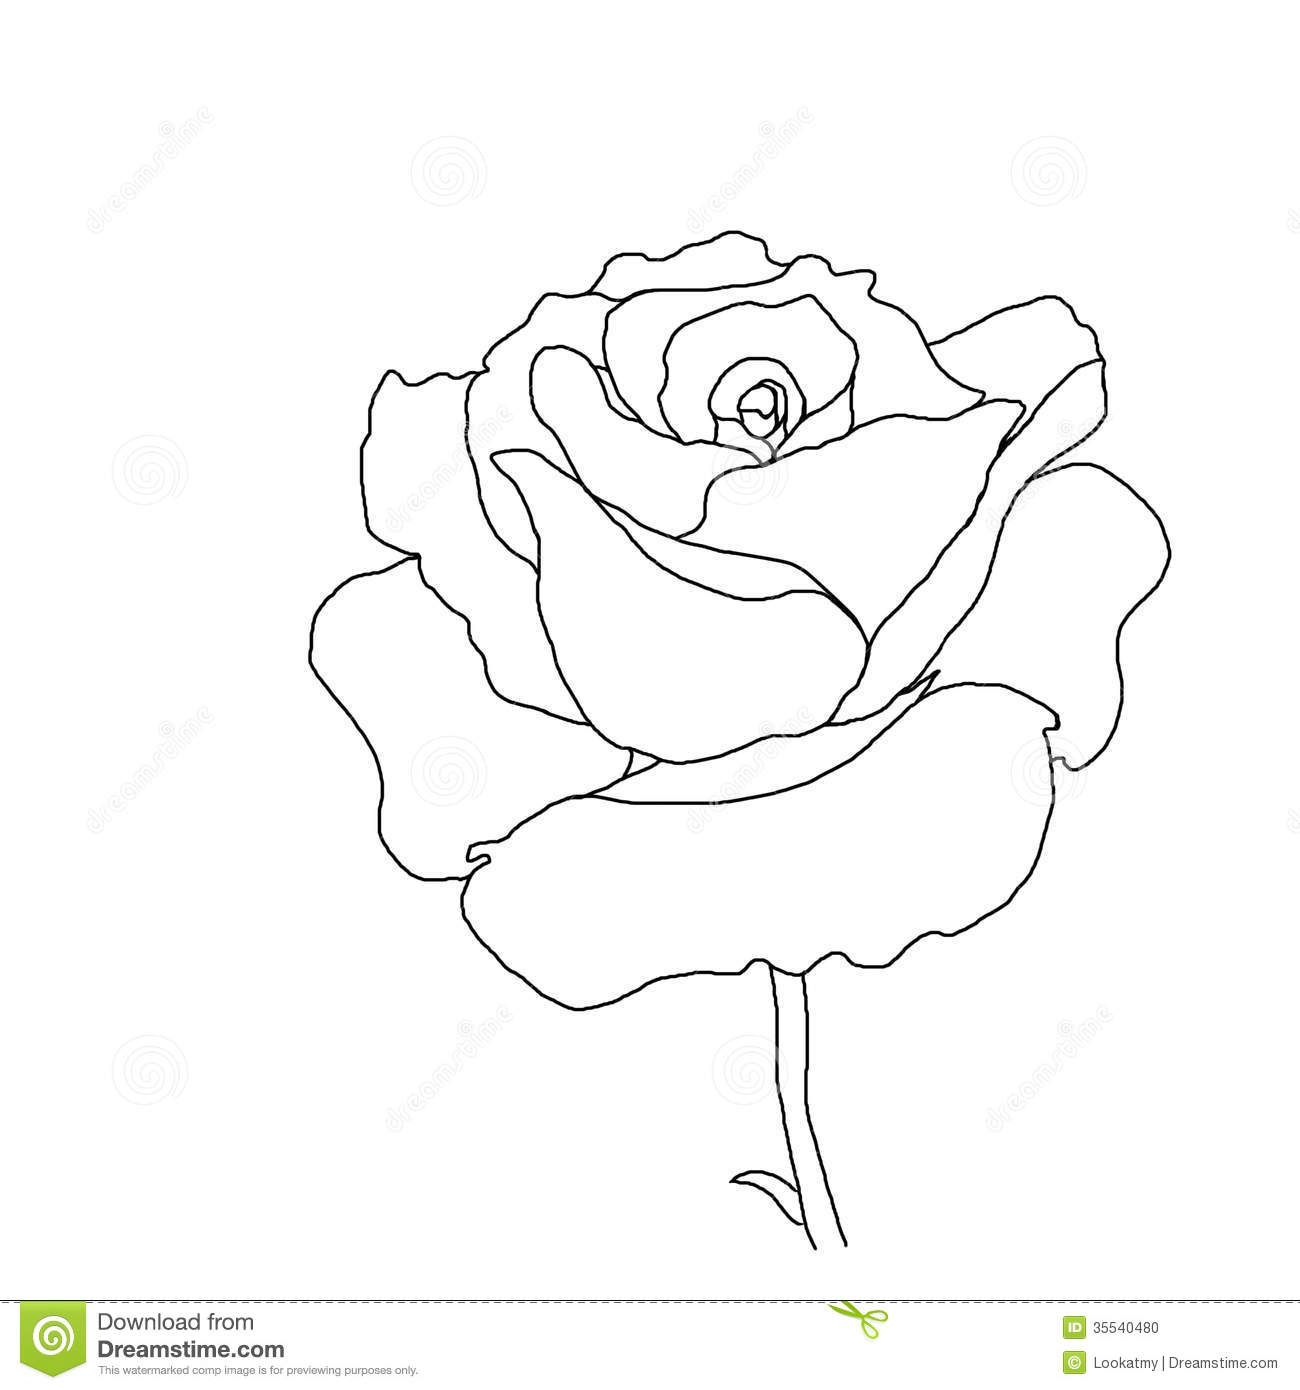 Knumathise Rose Black And White Outline Images